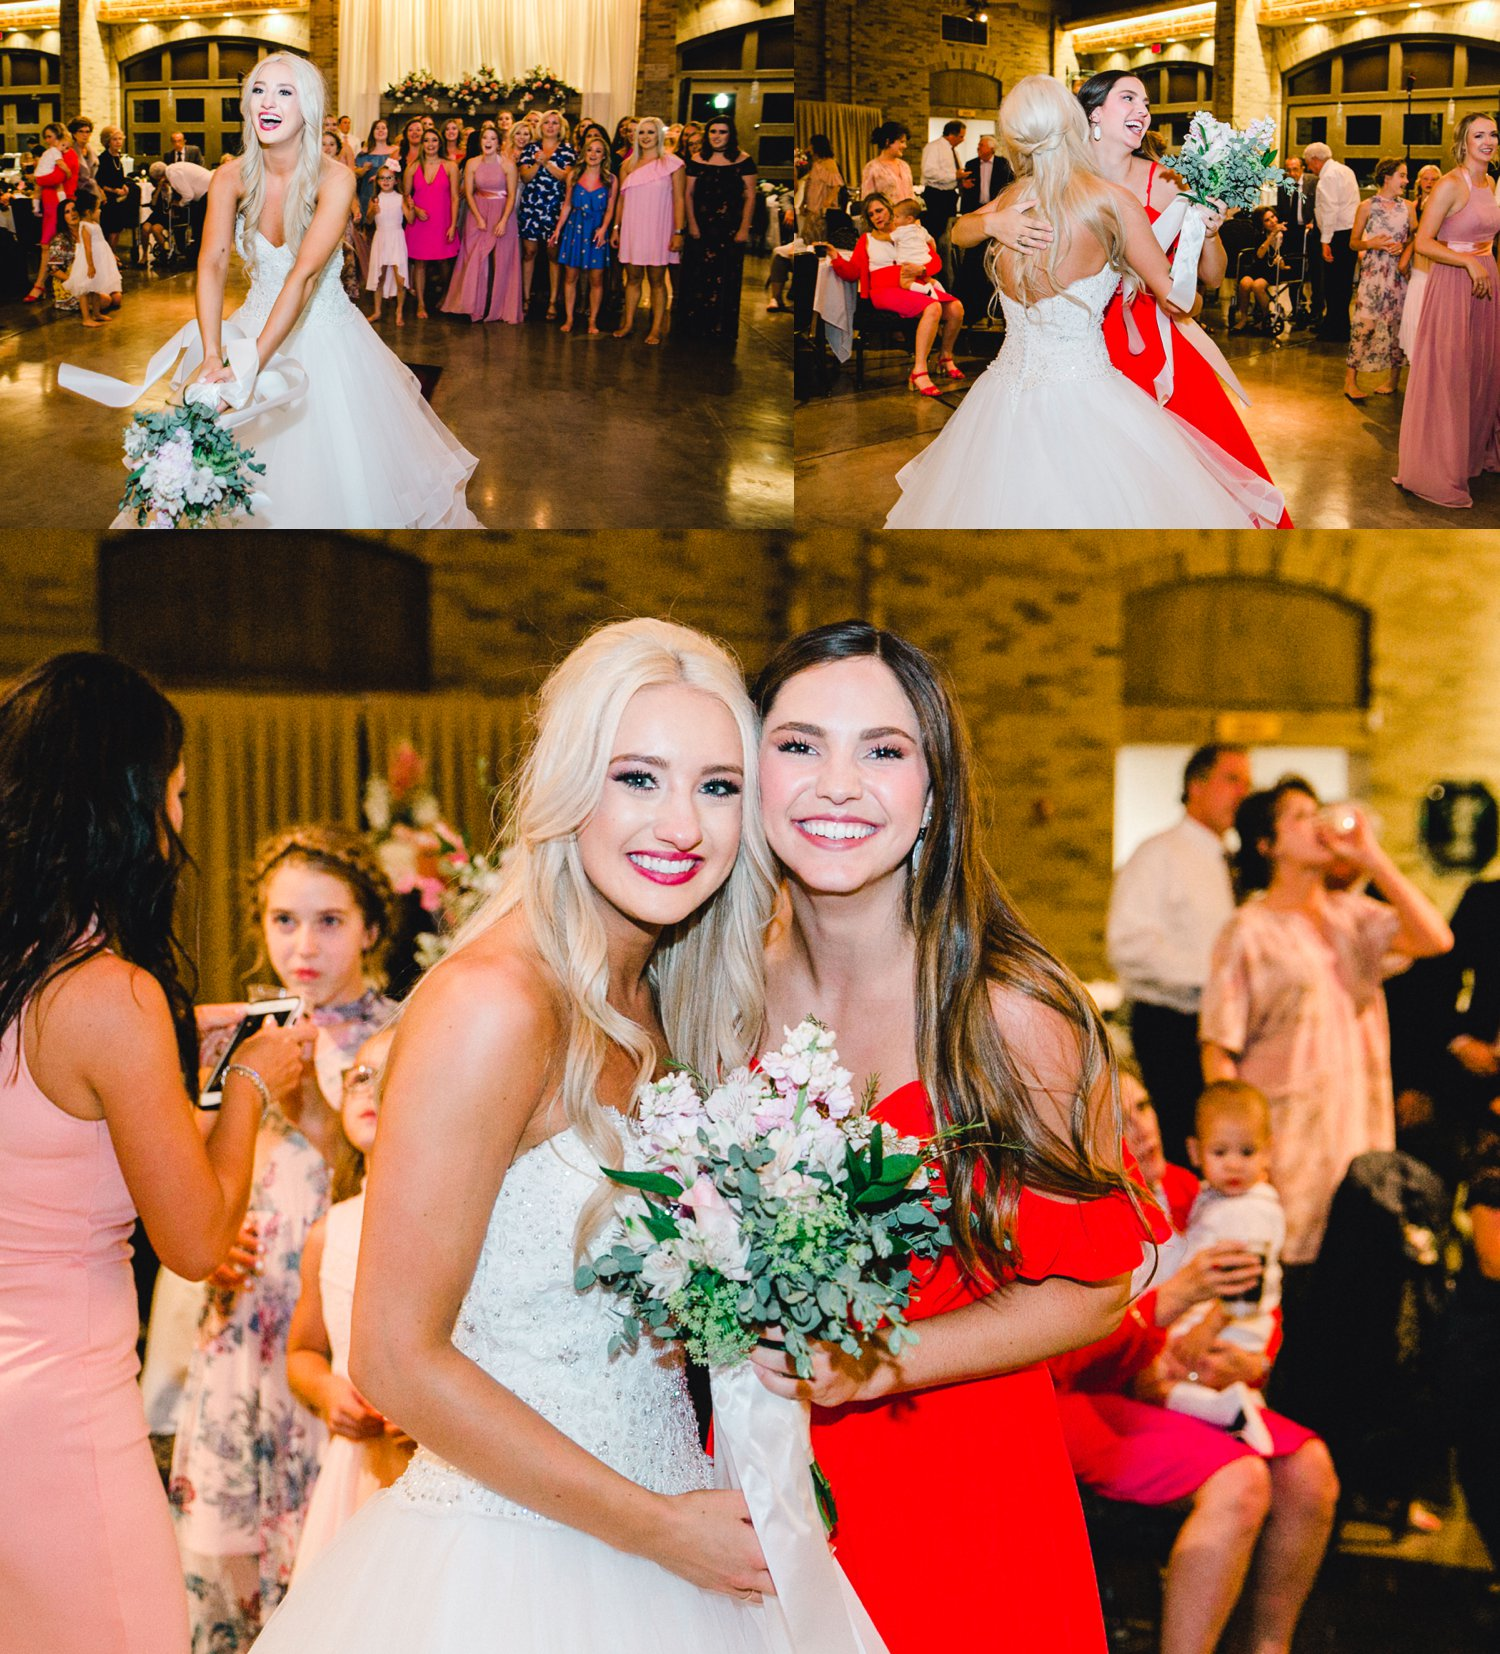 MADI_AND_WILL_STEPHENS_ALLEEJ_LUBBOCK_PHOTOGRAPHER_TEXAS+TECH+FRAZIER_ALUMNI0205.jpg